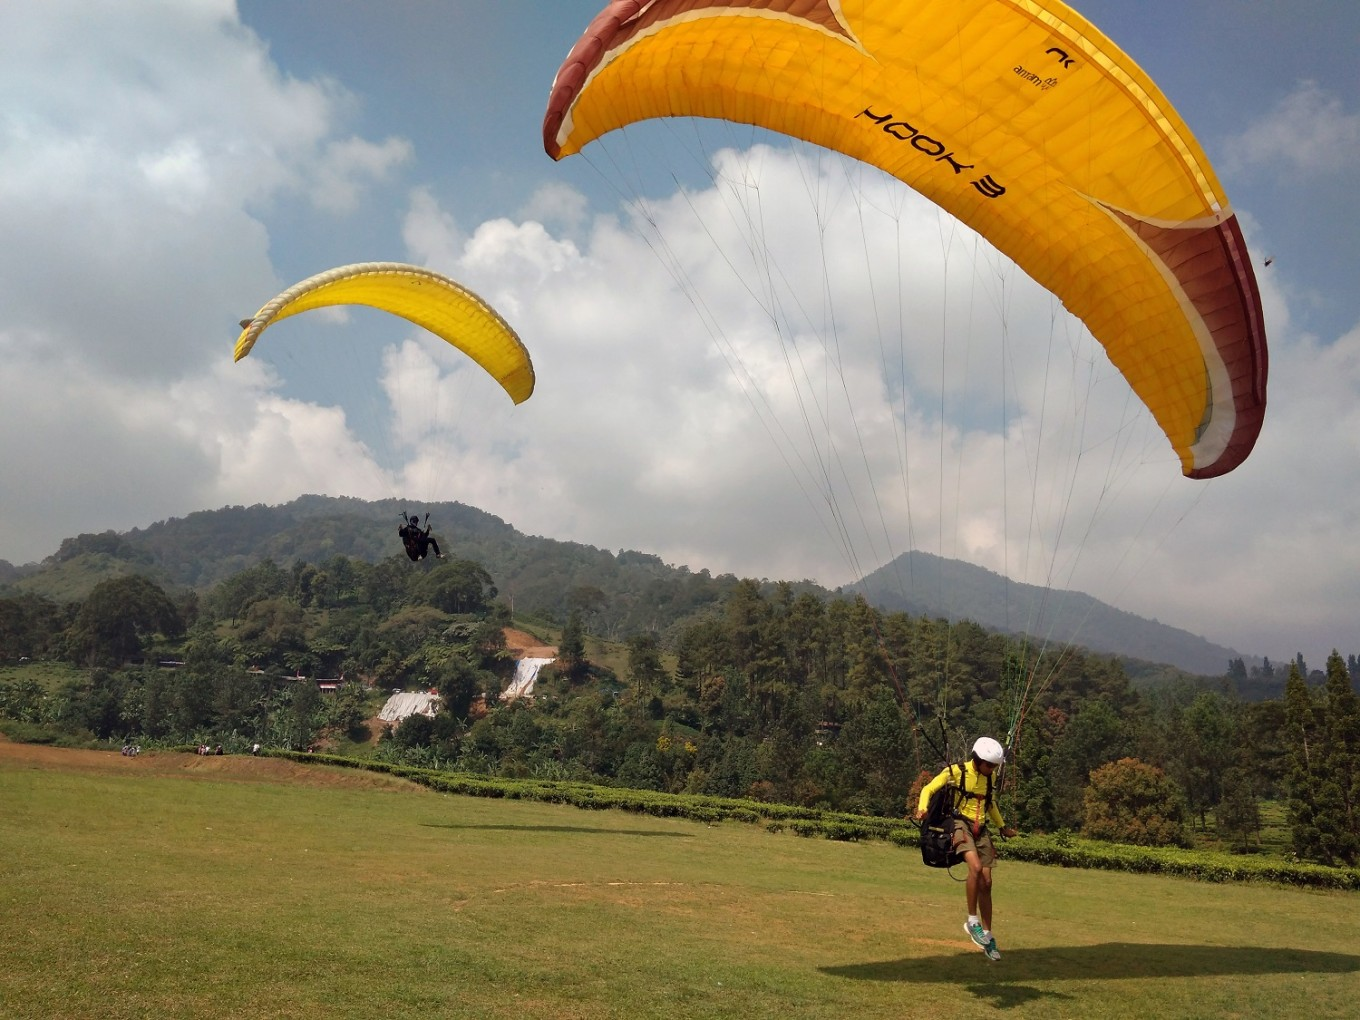 The paragliding competition is set to take place on Gunung Mas in Puncak, Bogor.